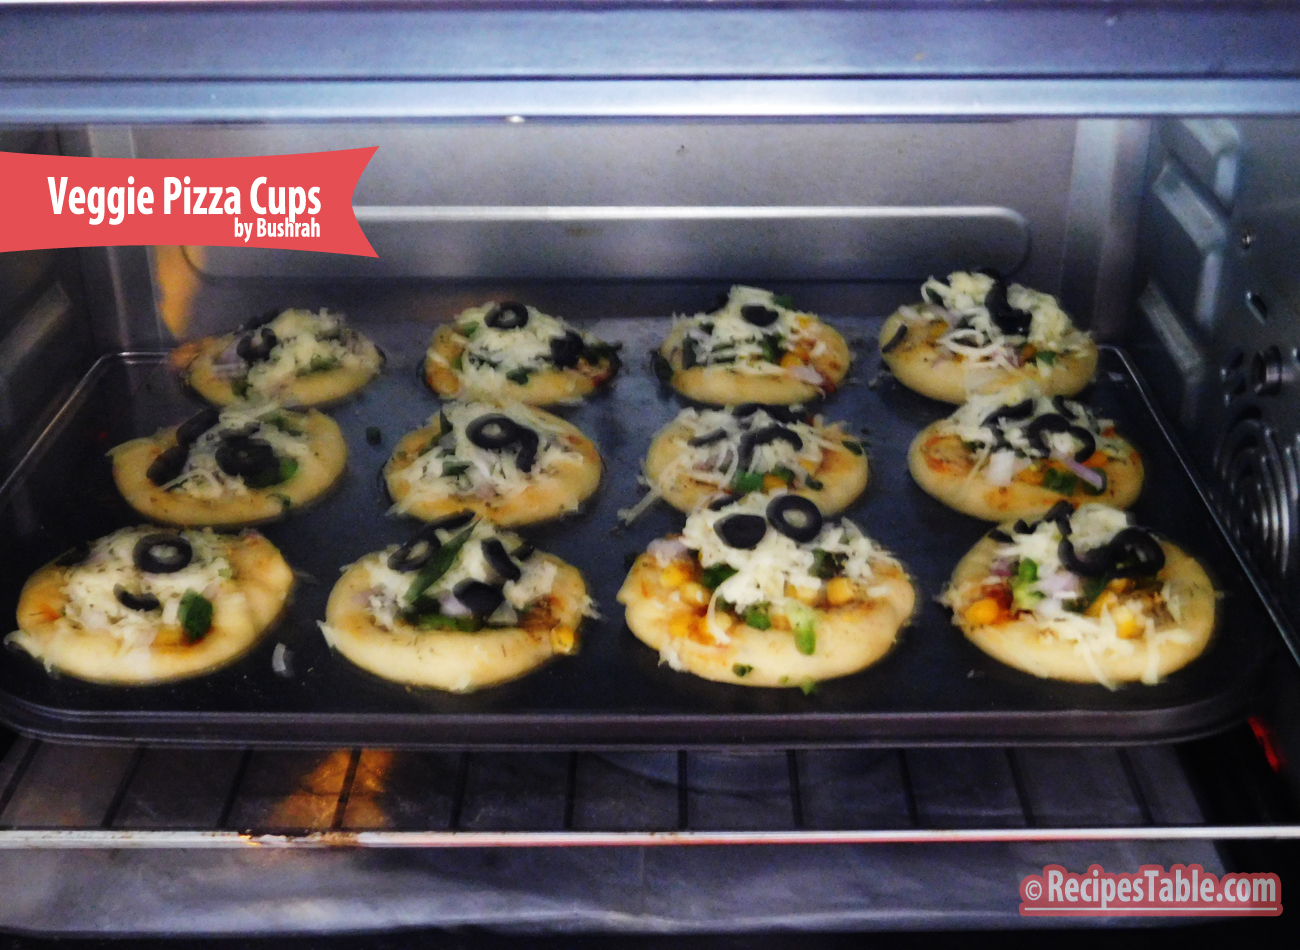 Veggie Pizza Cups recipe